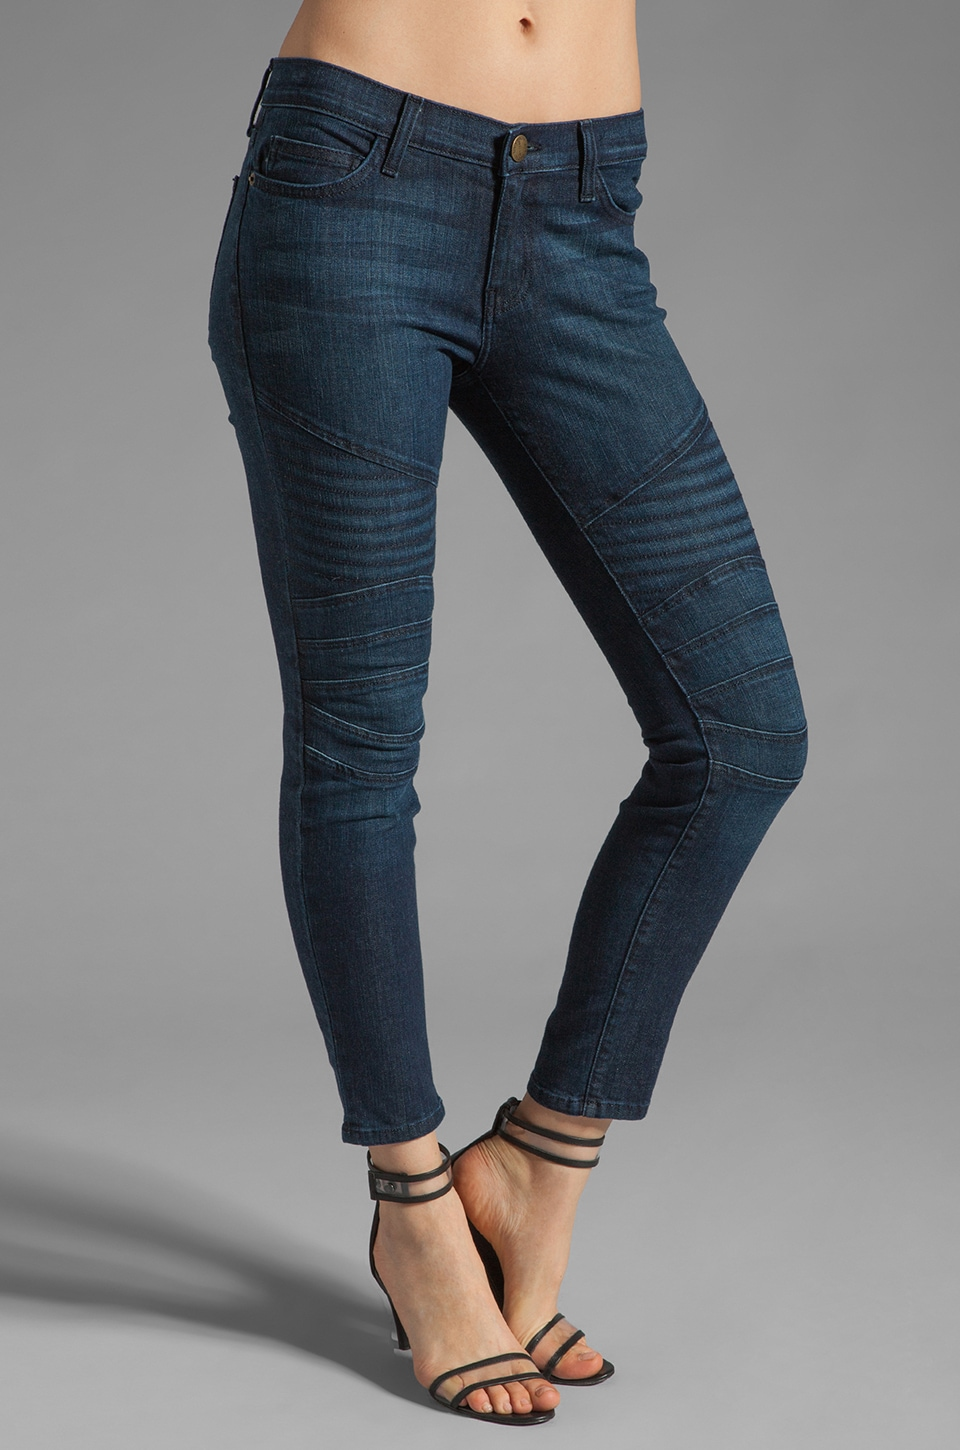 Current/Elliott Moto Ankle Skinny